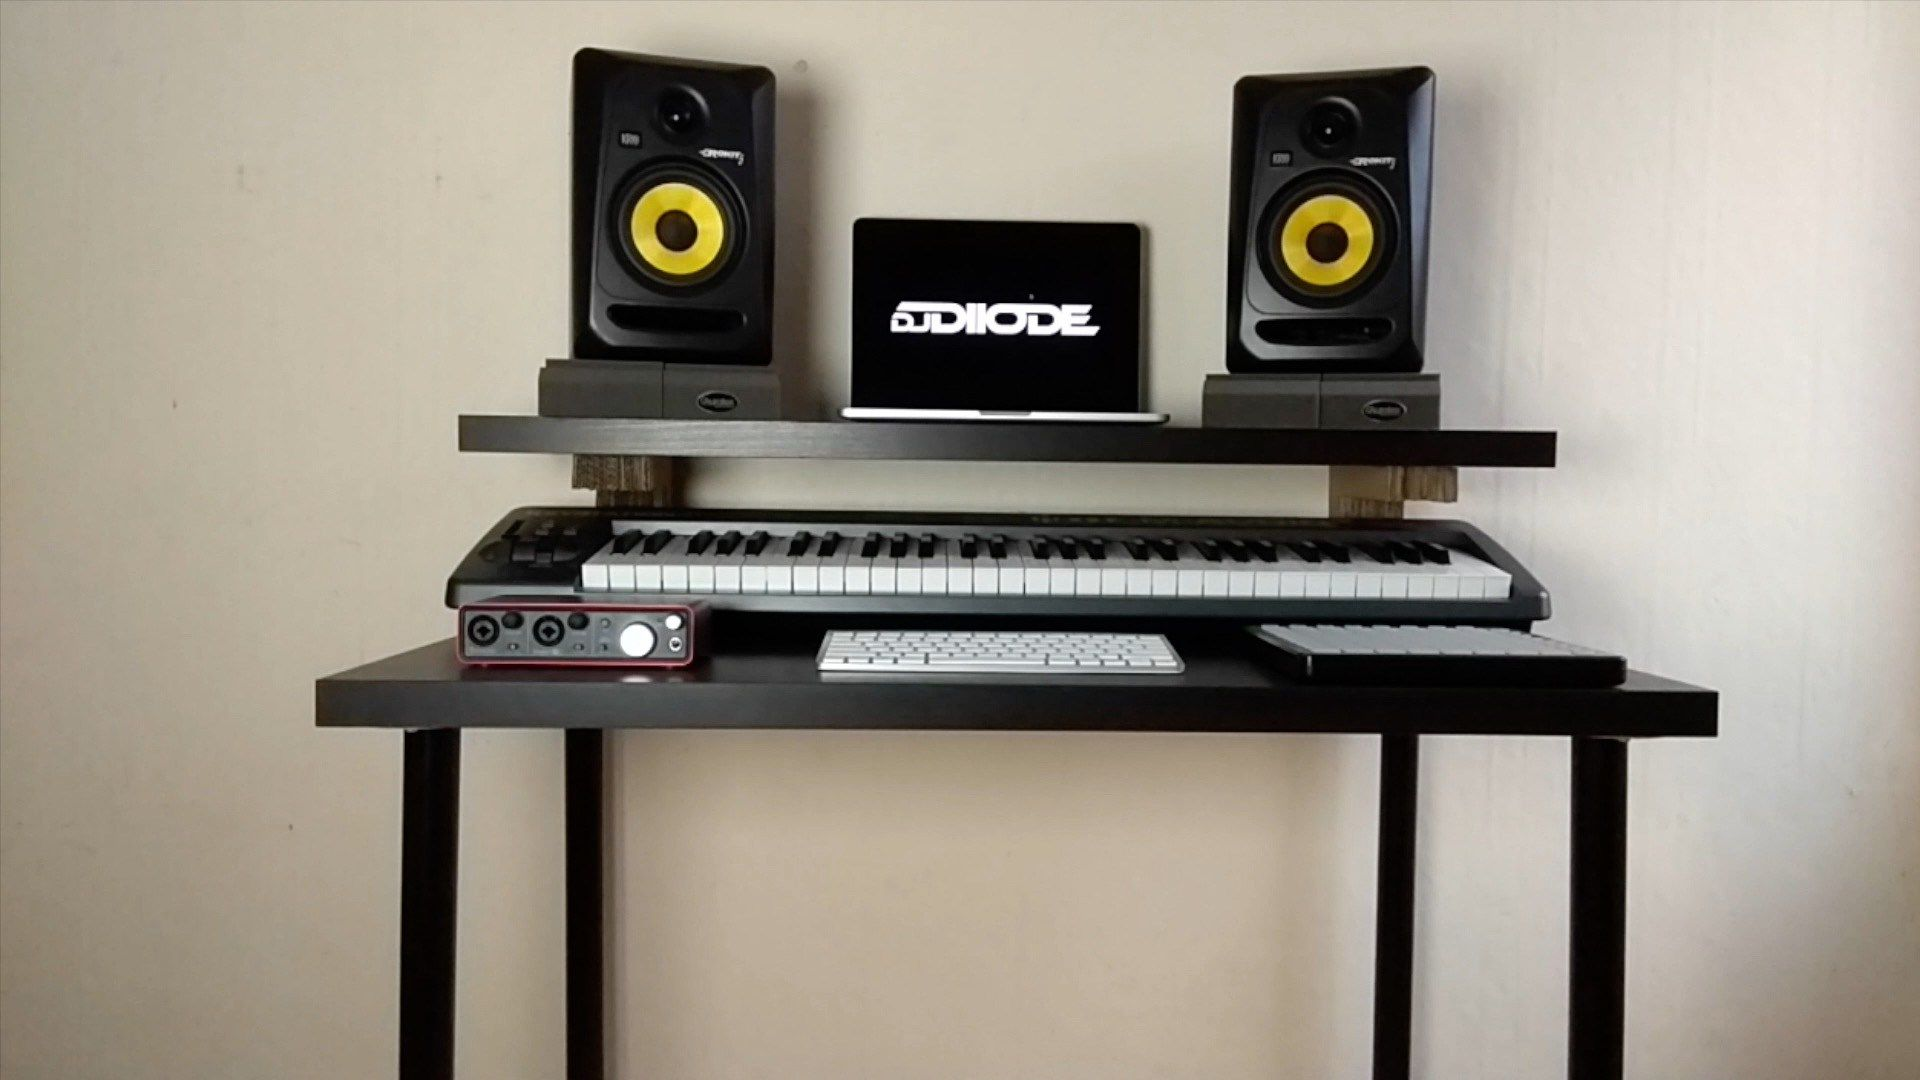 Make A Music Production Desk With Only 40 Pounds Ikea Hacks Ikea